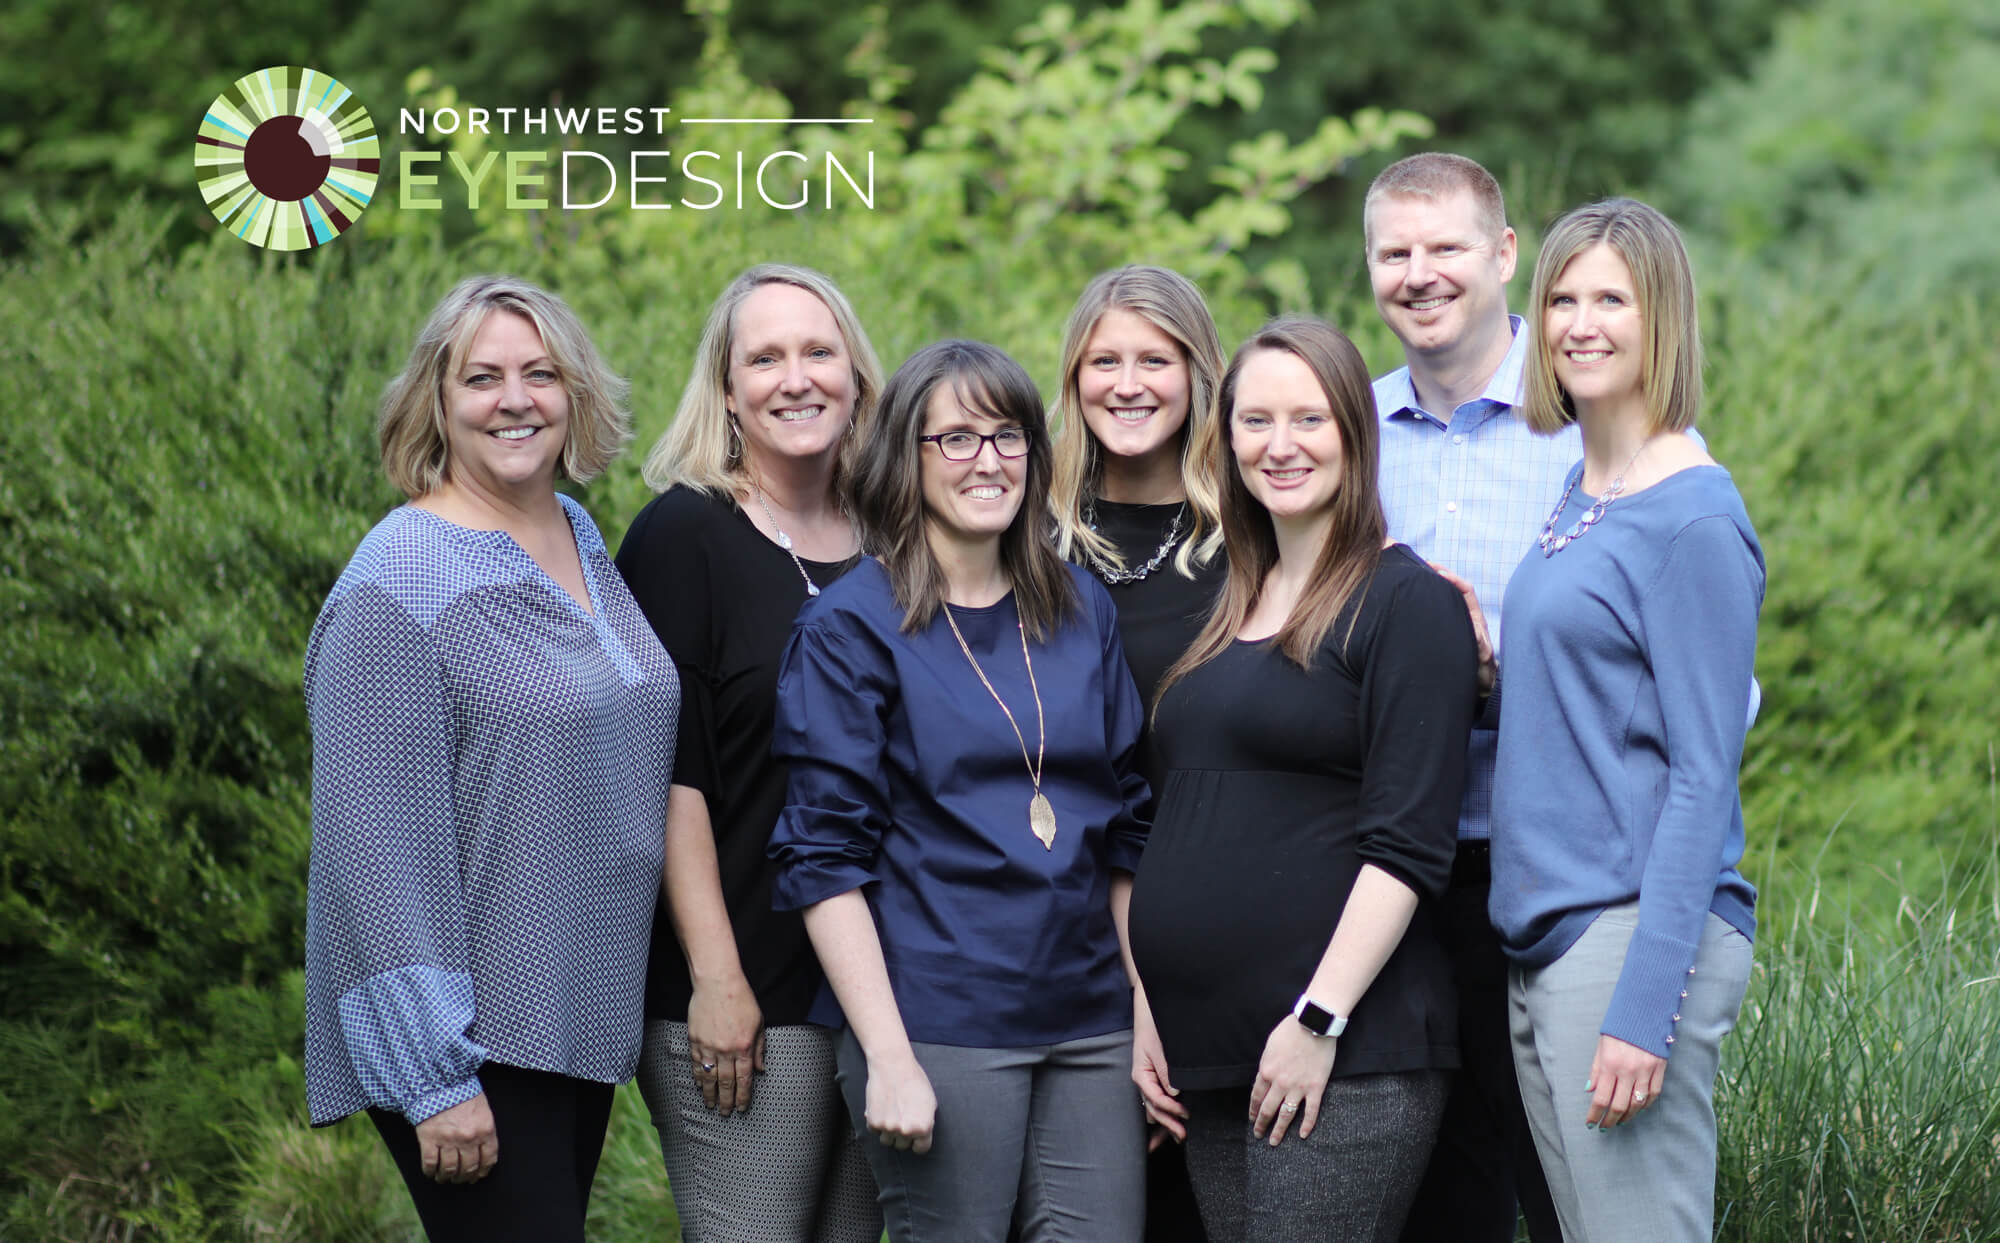 northwest eye design team